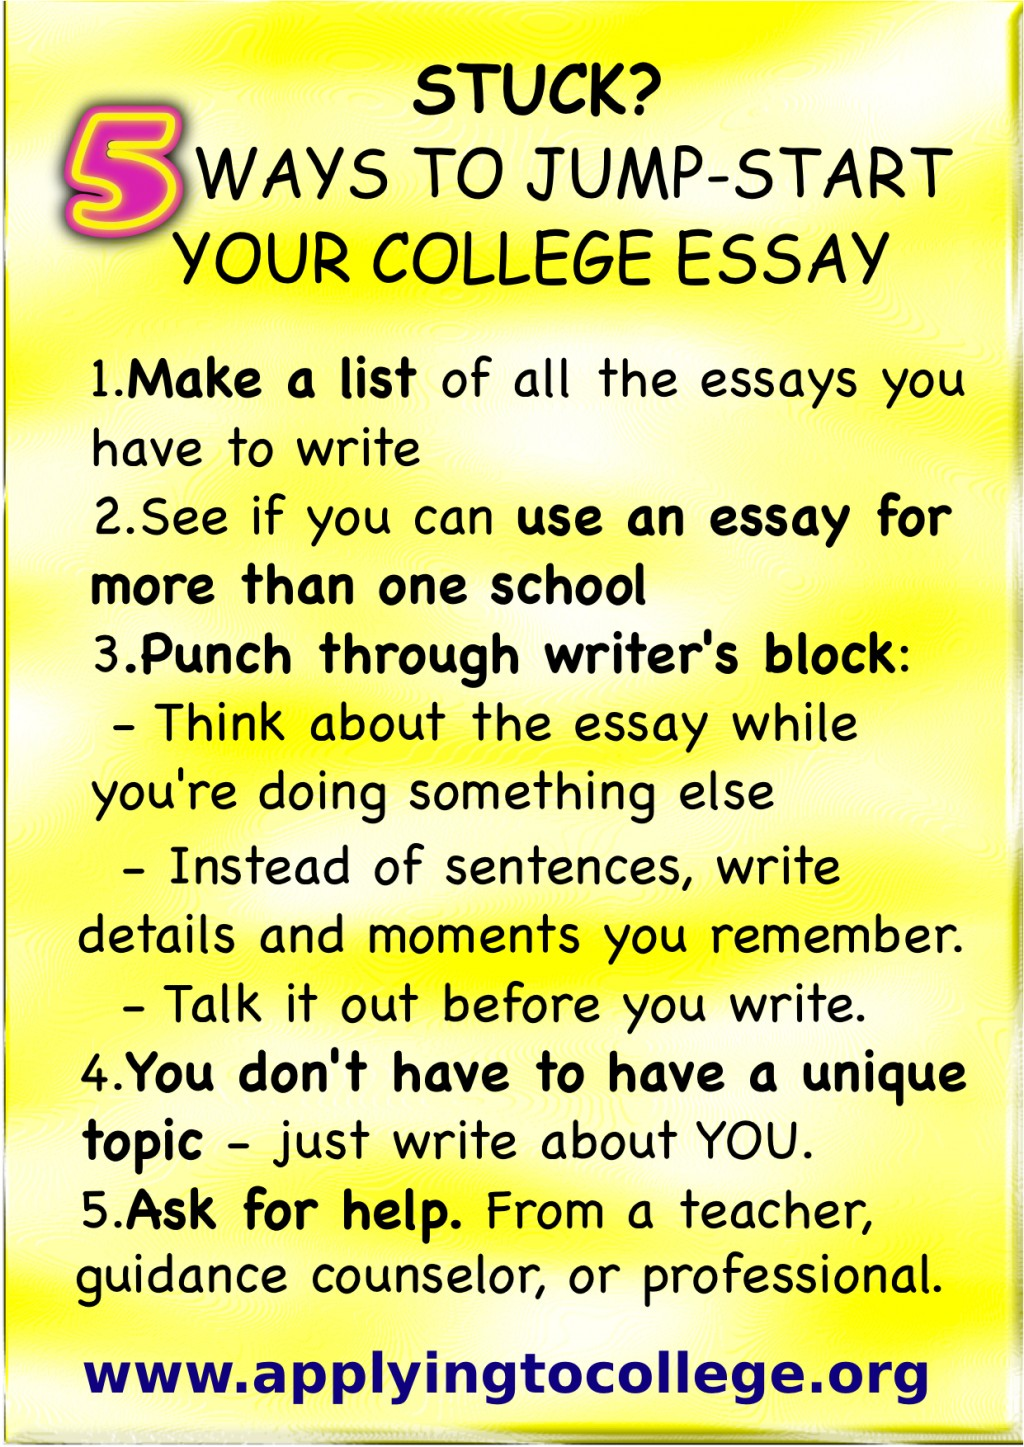 010 How To Start An Application Essay Ways Reduce Stress Stirring Write About Yourself For College Examples Common App Introduction Large